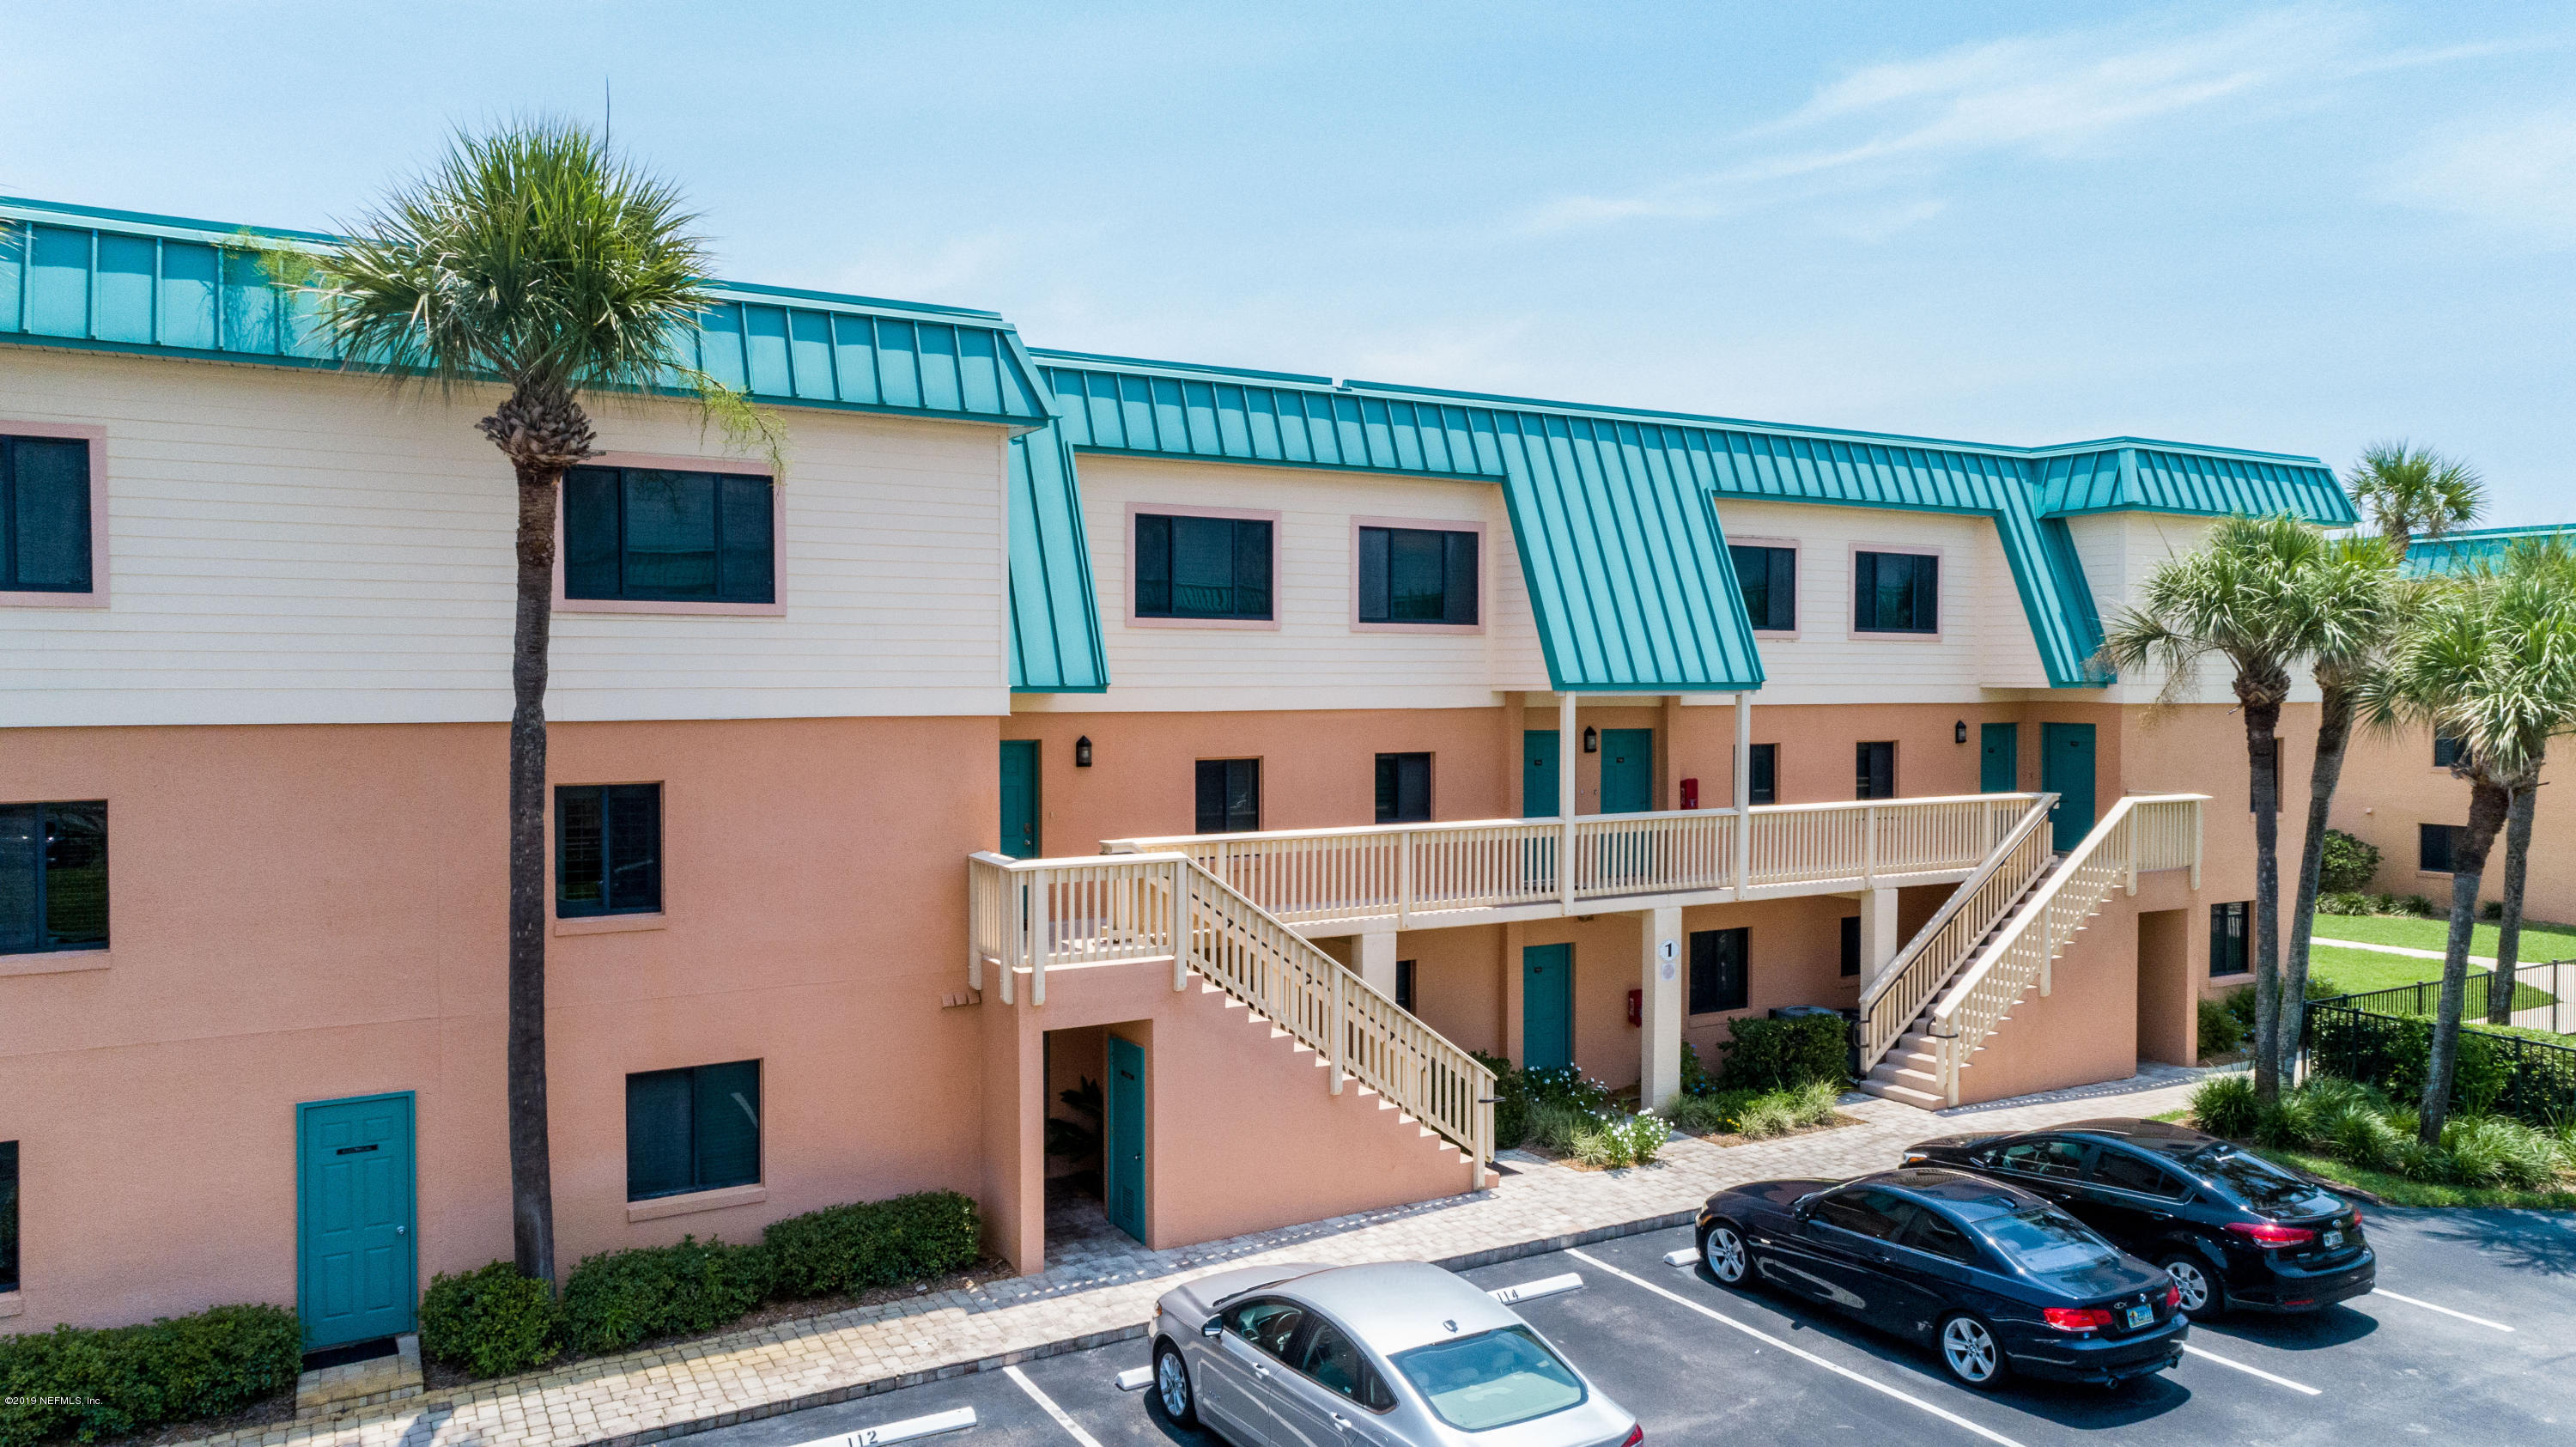 6100 FLORIDA A1A, ST AUGUSTINE, FLORIDA 32080, 2 Bedrooms Bedrooms, ,2 BathroomsBathrooms,Residential - condos/townhomes,For sale,FLORIDA A1A,1004278